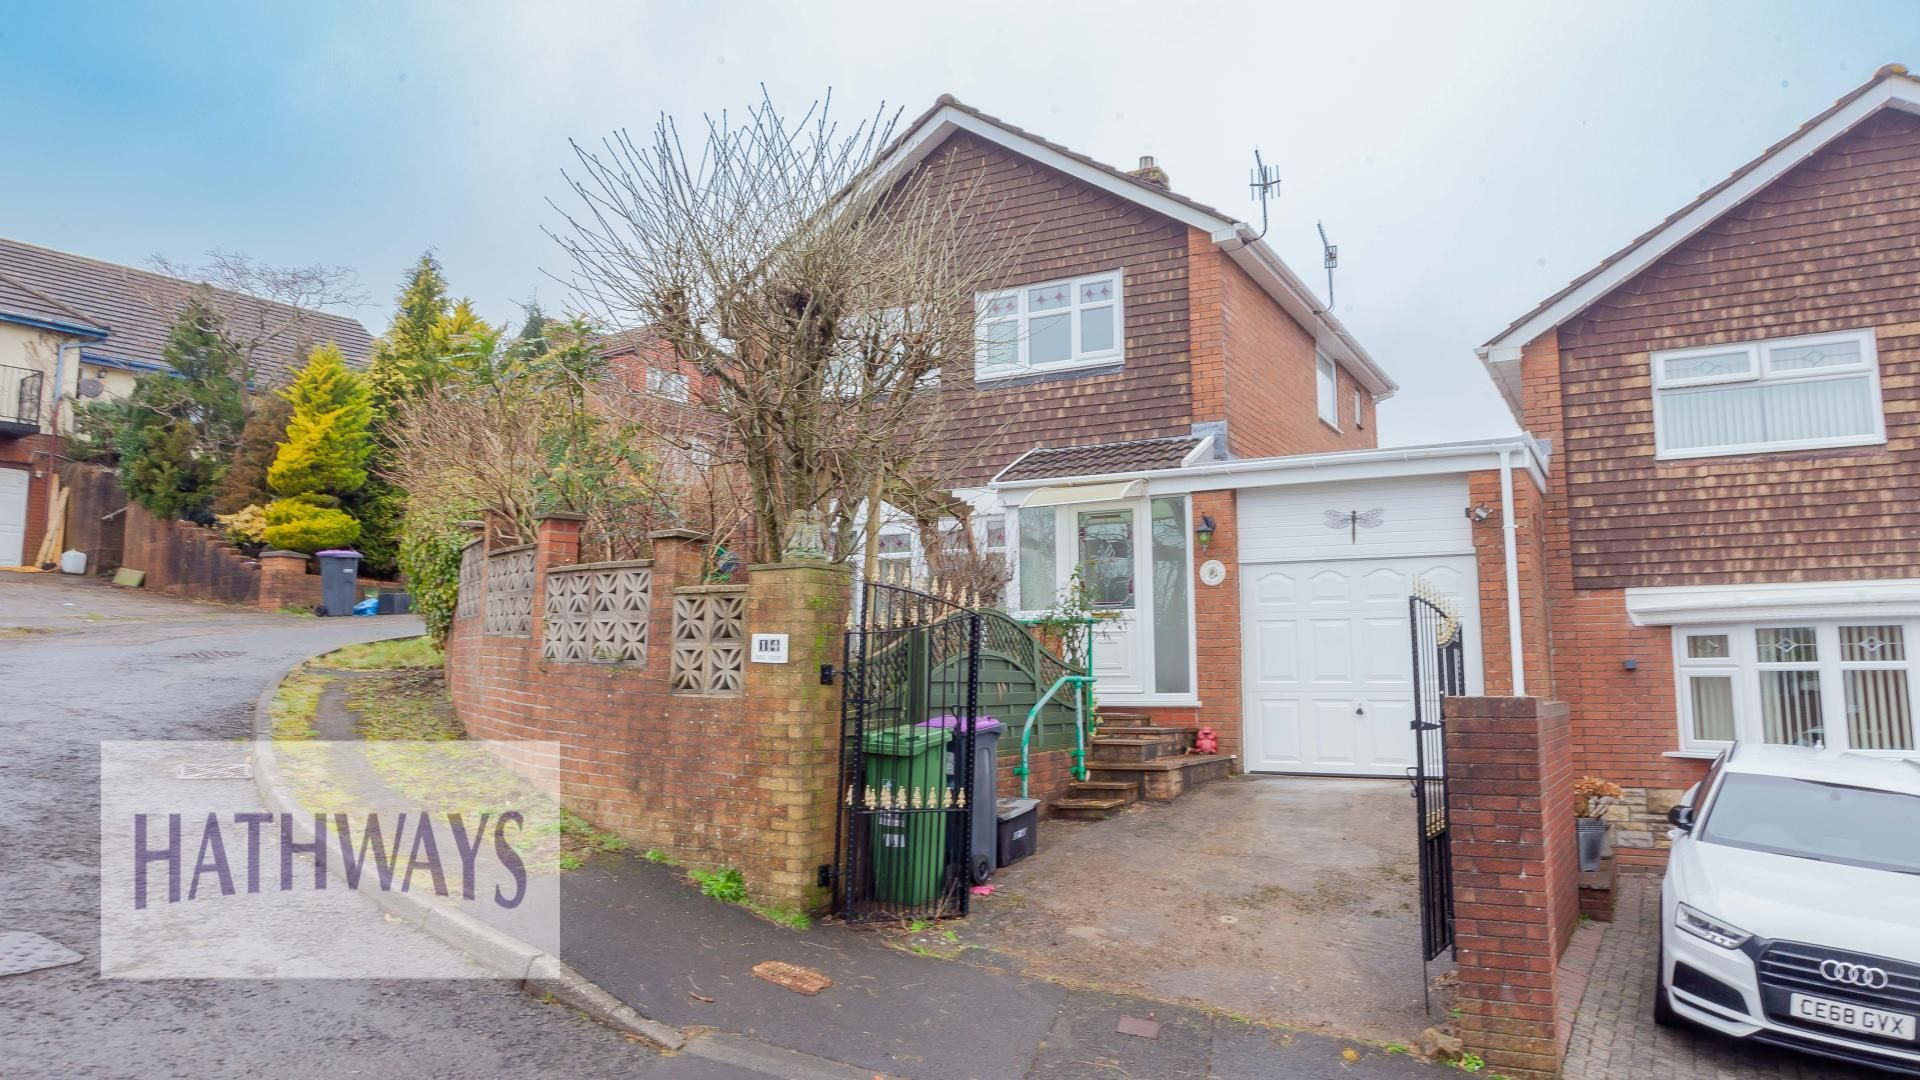 3 bed house for sale in Oaks Court, NP4